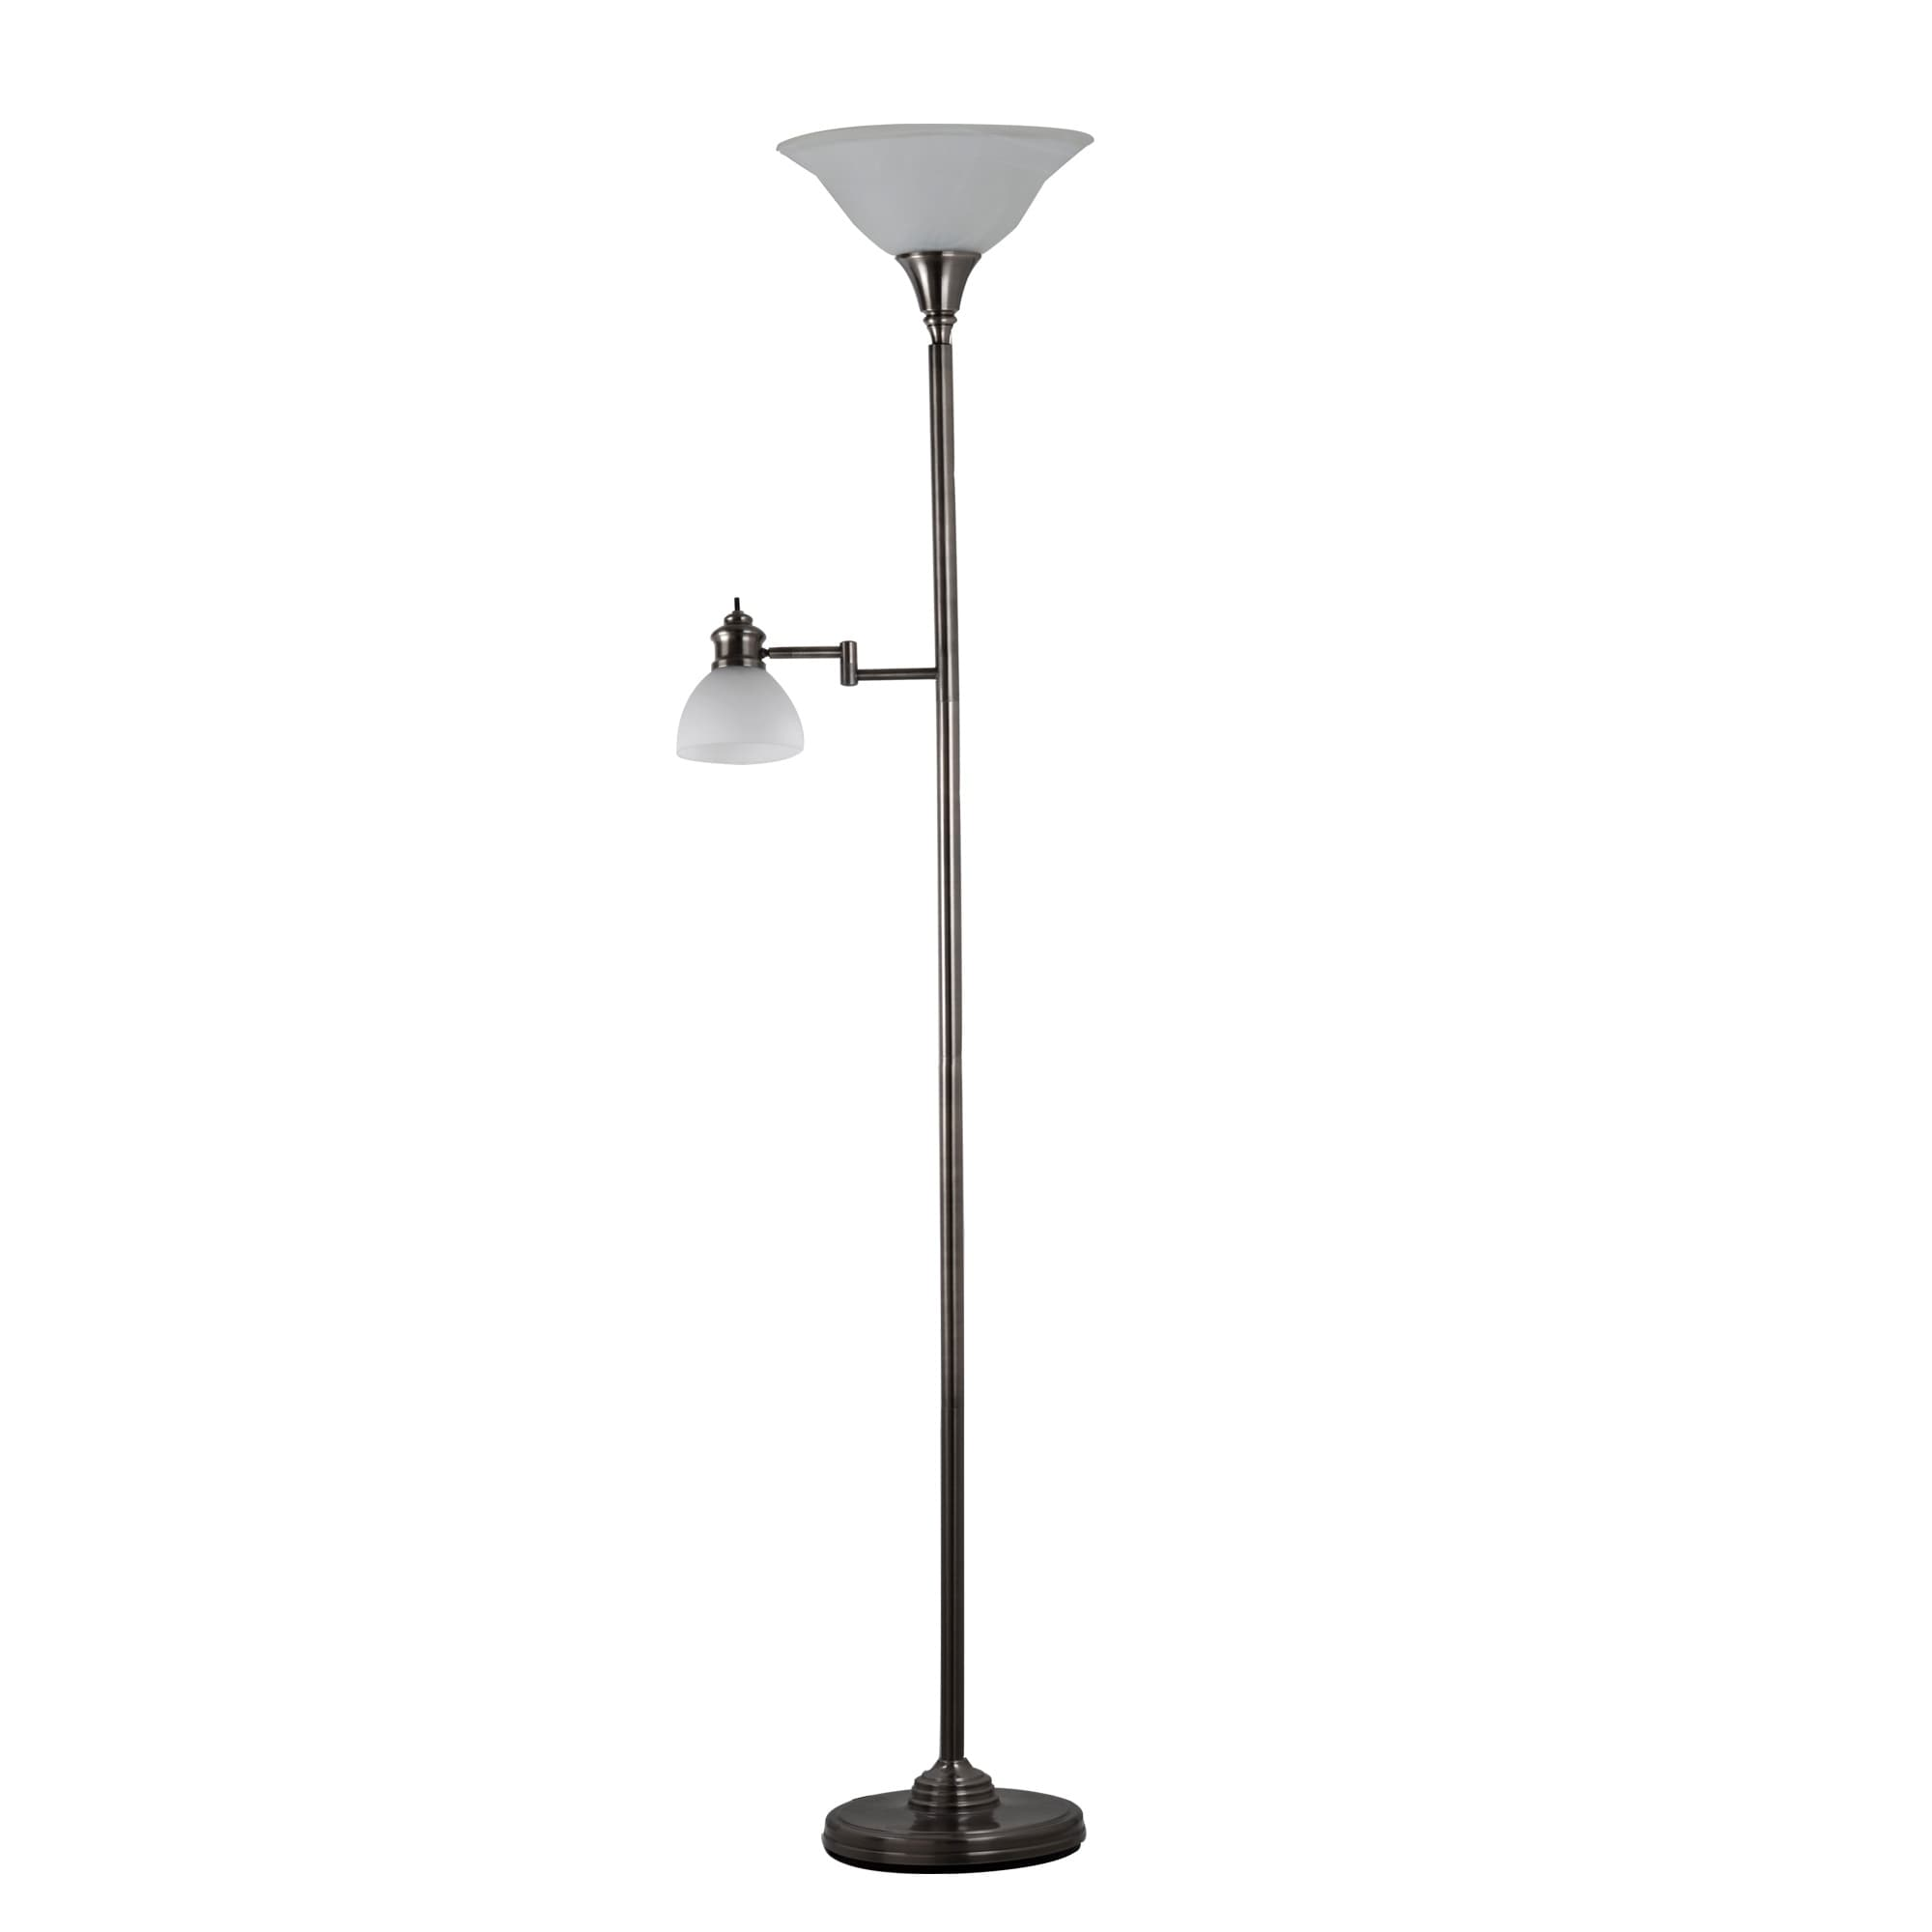 Image of: Shop Black Friday Deals On Adesso Aaron Swing Arm Torchiere Floor Lamp With Reading Light On Sale Overstock 30378097